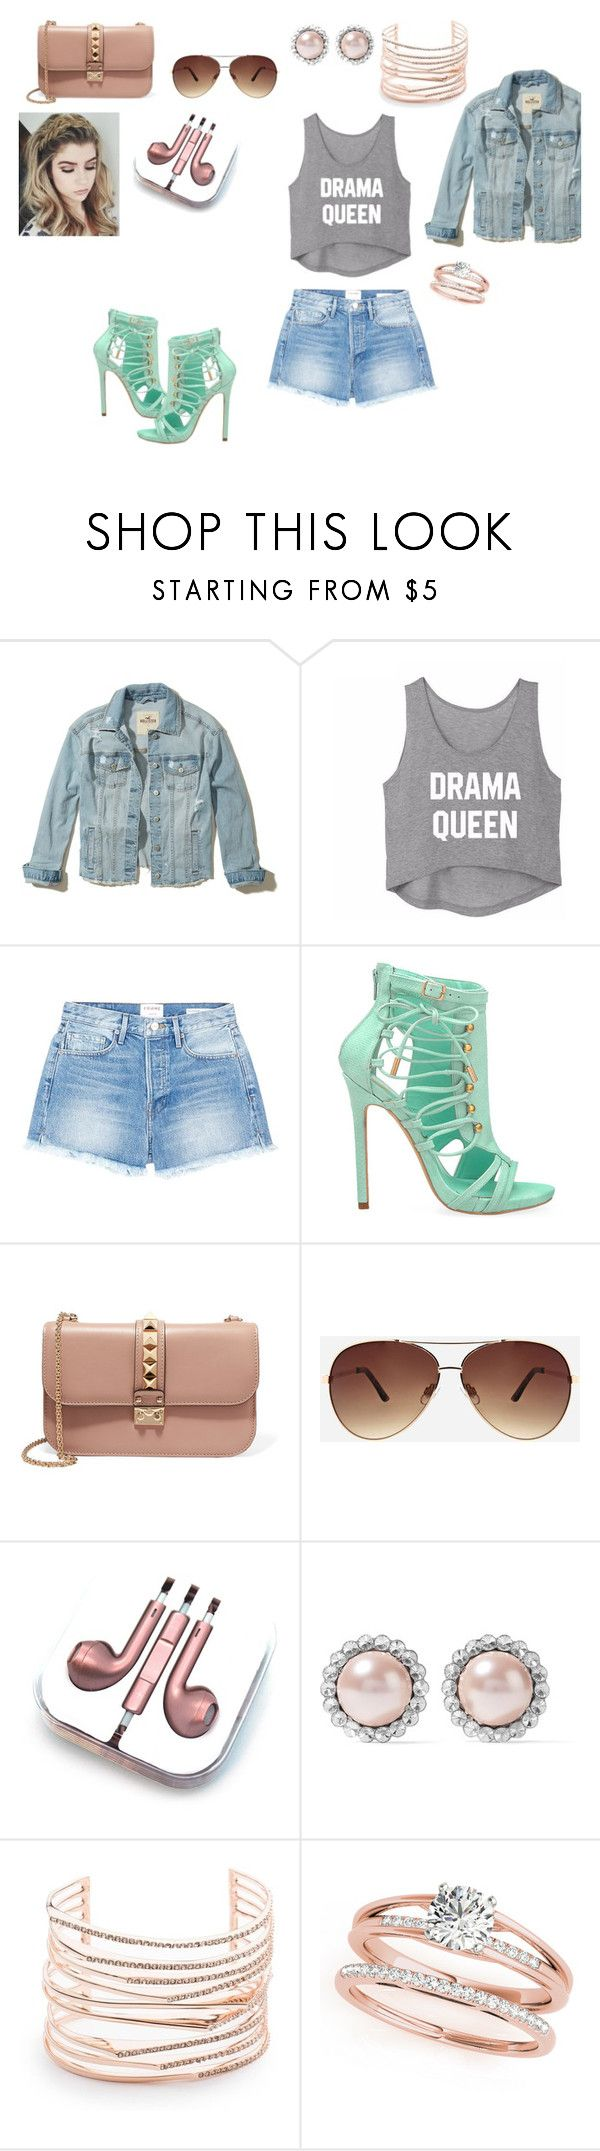 """Caitlin"" by allihelms on Polyvore featuring Hollister Co., Frame, Privileged, Valentino, Ashley Stewart, PhunkeeTree, Miu Miu and Alexis Bittar"